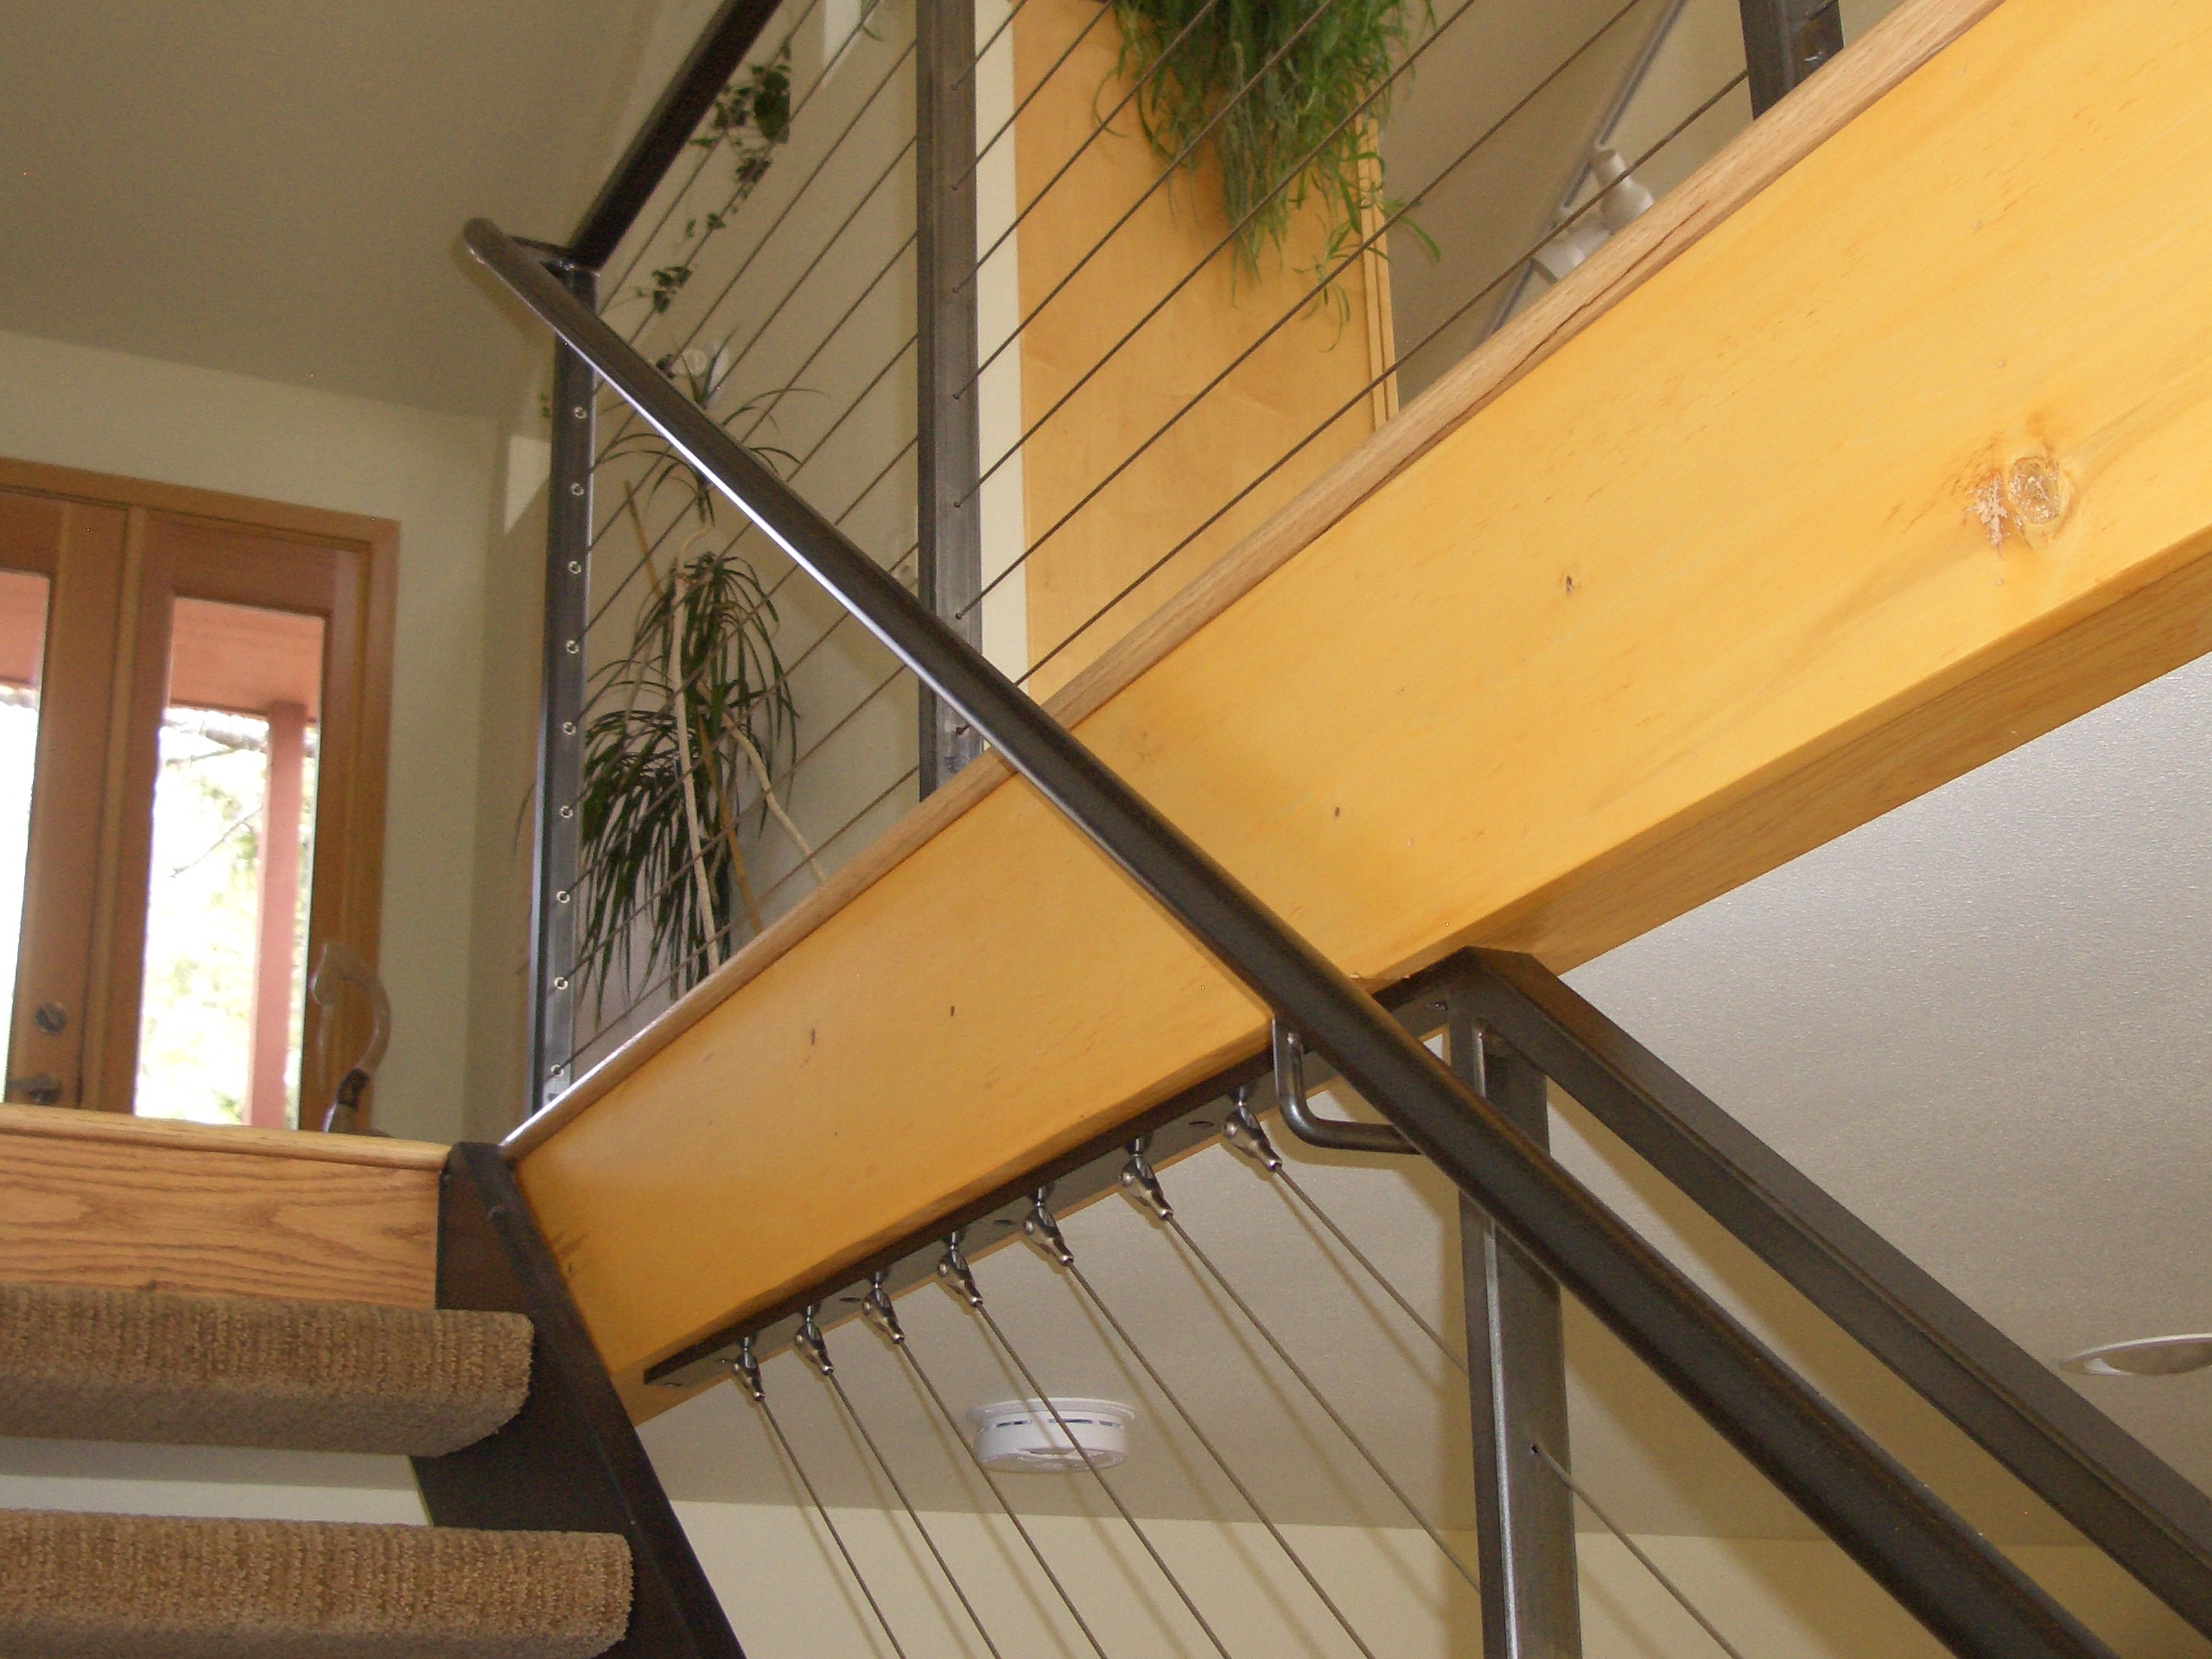 Interior Cable Railing With Continuous Stair Hand Rail Mclean | Wood And Cable Stair Railing | Dark | Diy | Exterior Irregular Stair | Residential | Forgings